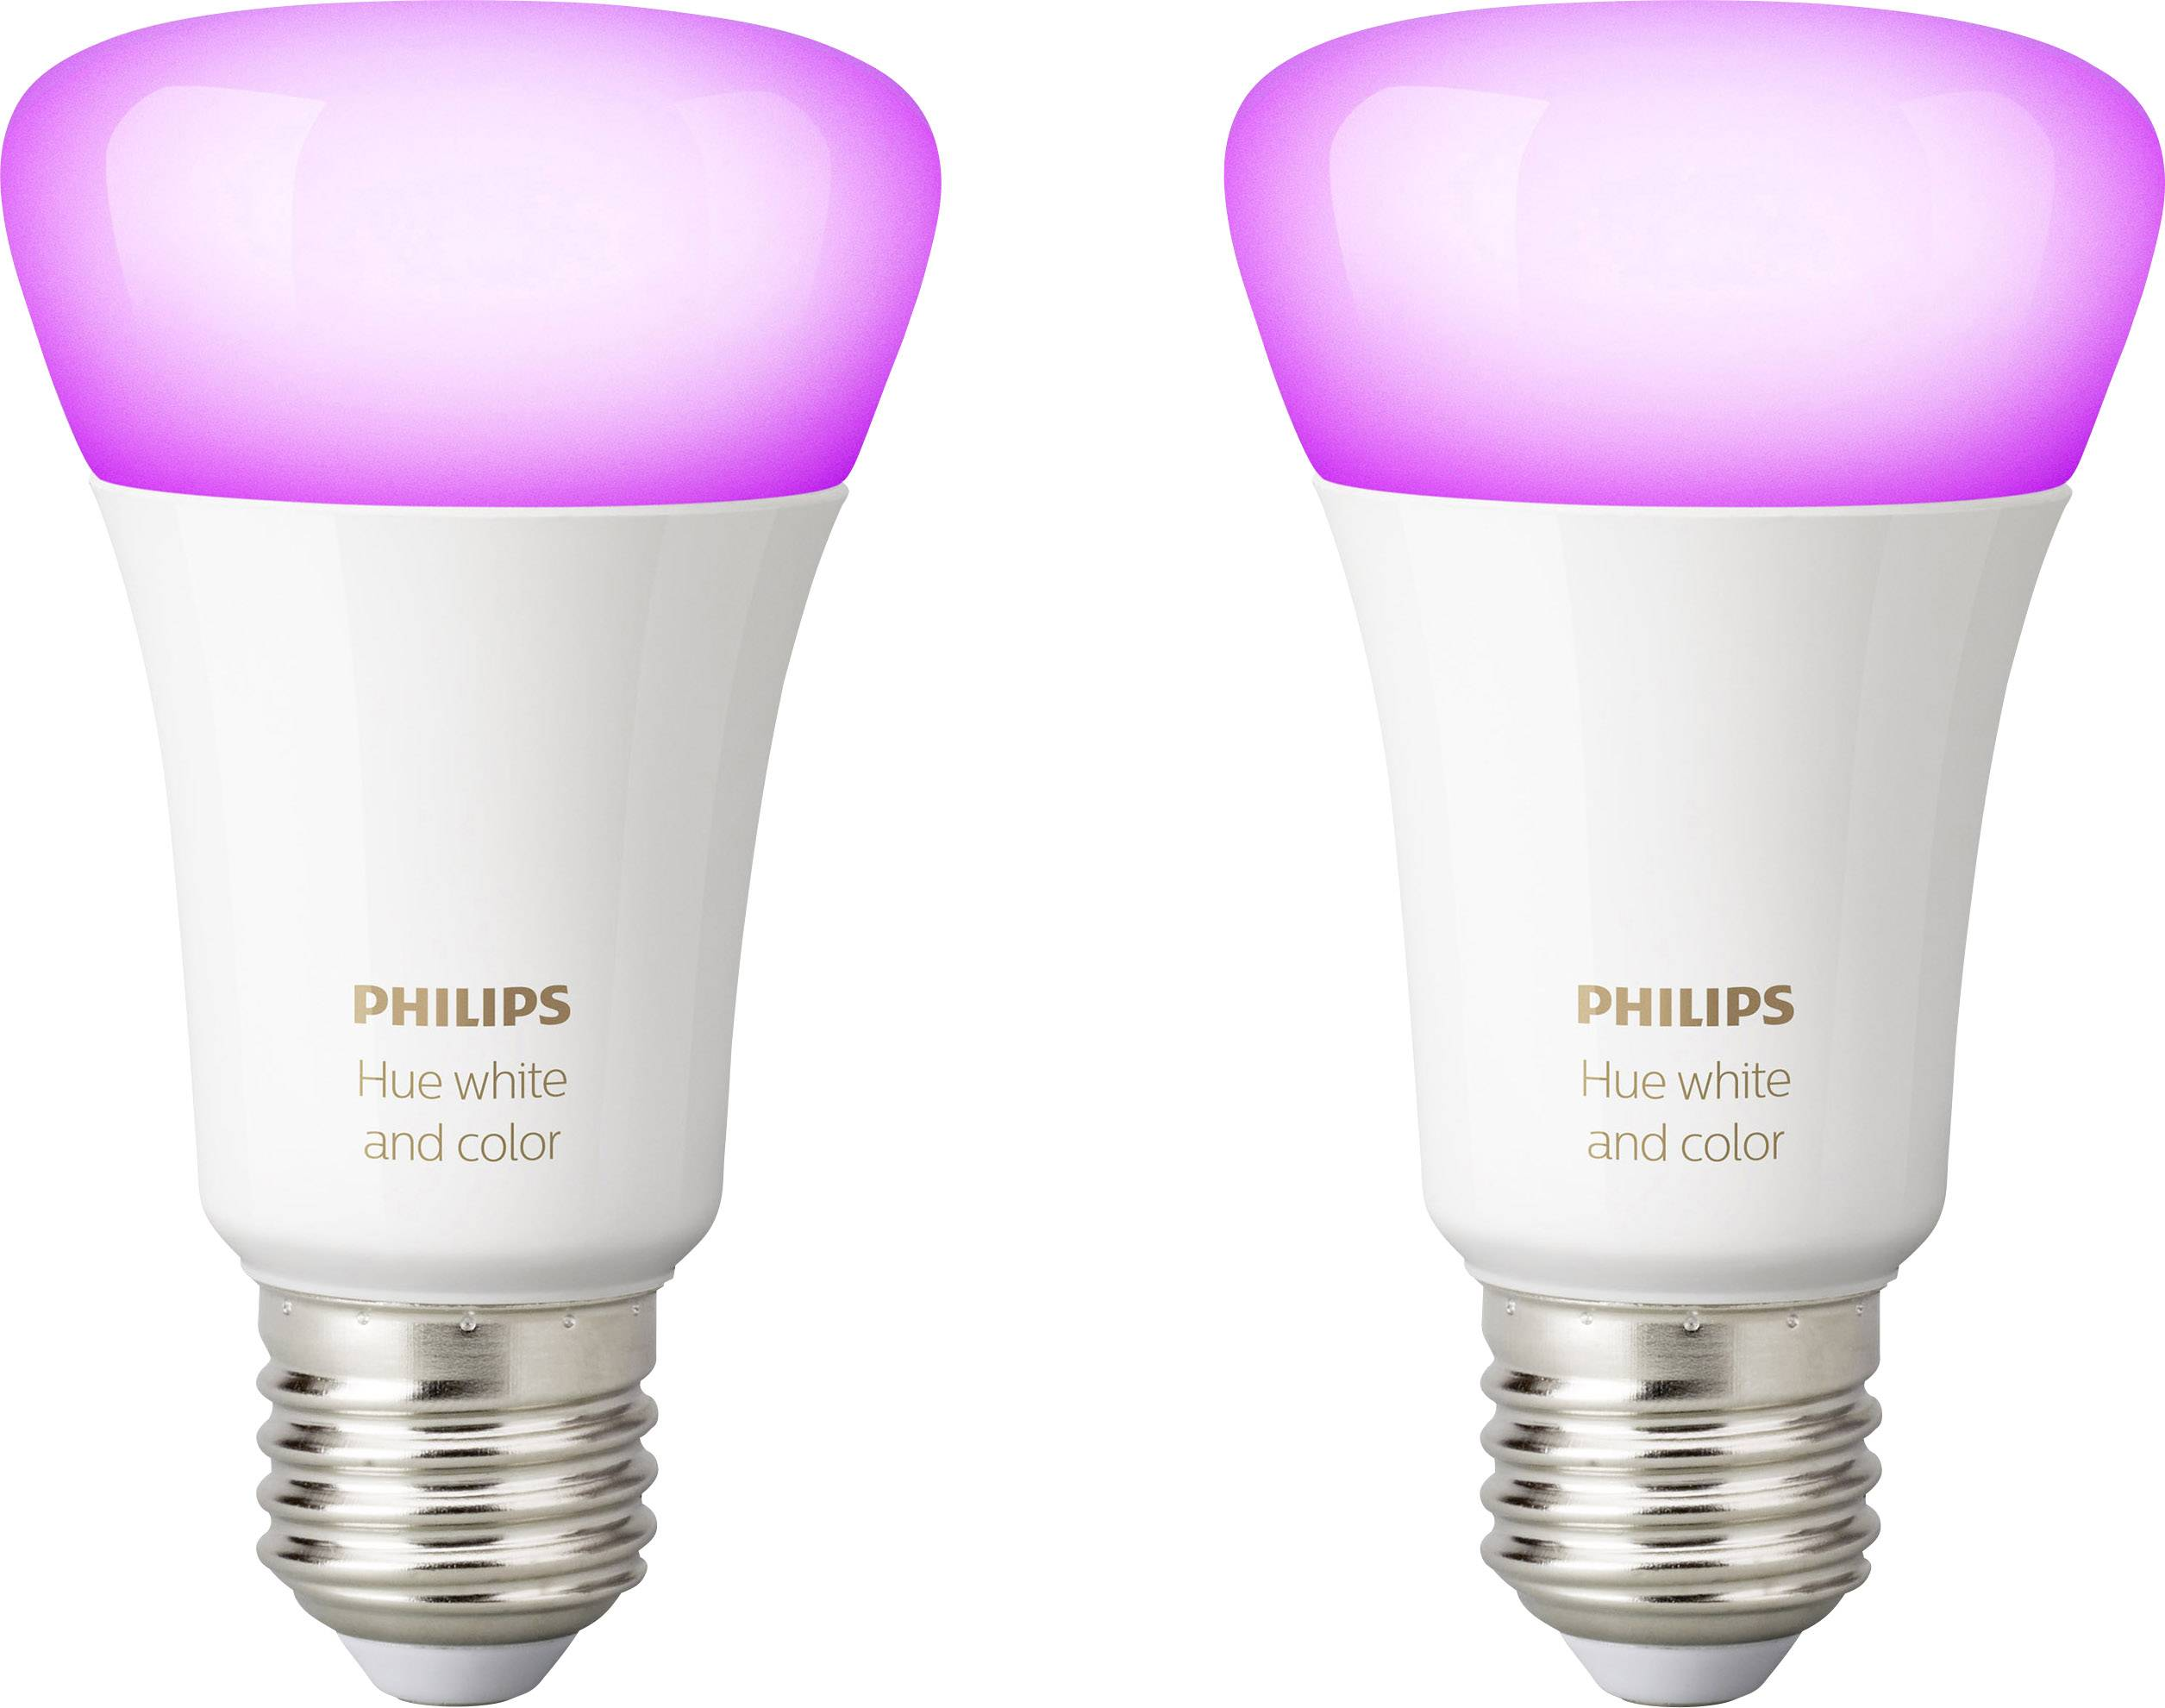 LED žárovka (sada 2 ks) Philips Lighting Hue white and color ambiance, E27, 10 W, RGBW